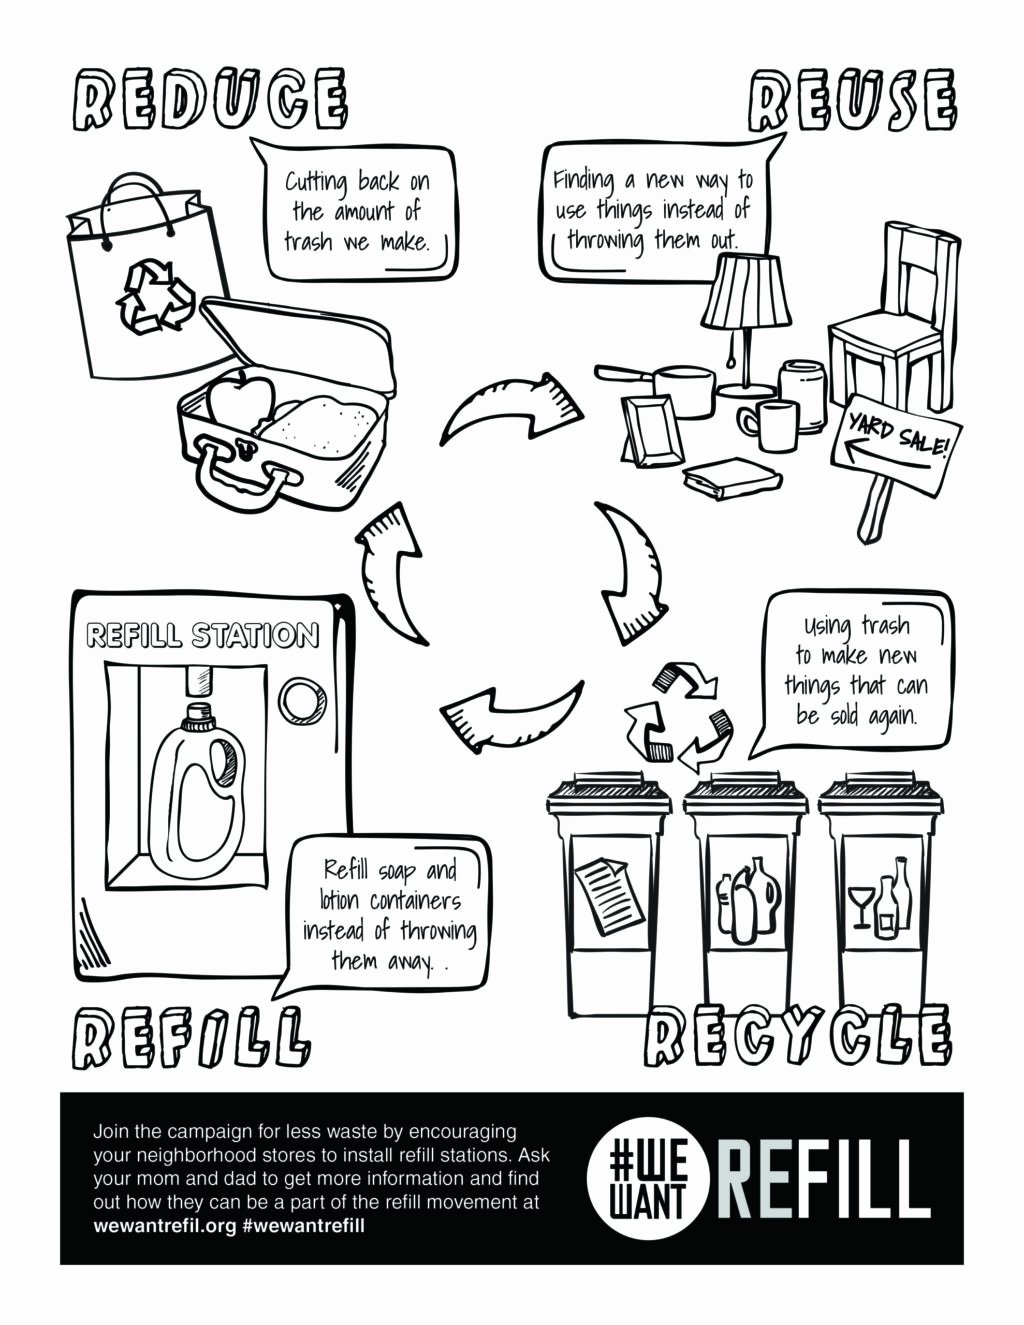 Recycling Worksheets for Preschoolers Fresh Worksheet Reuse Recycle Worksheet Preschool Printable